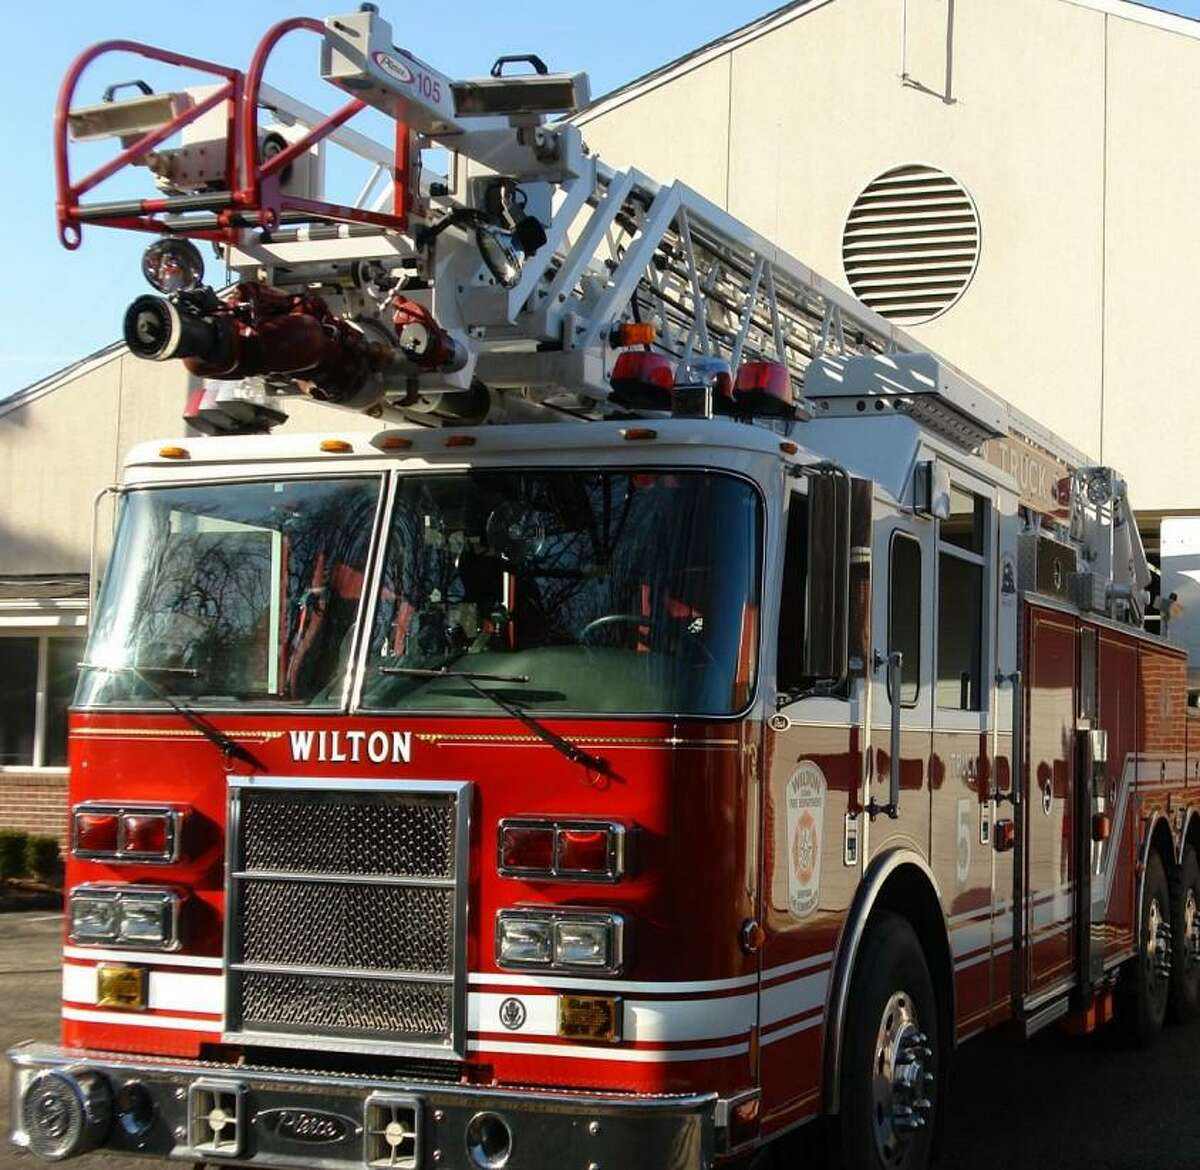 Wilton Fire Chief Jim Blanchfield was able to secure the purchase of a new ladder truck for the department to replace the 17- year- old laddet that is currently serving the town.